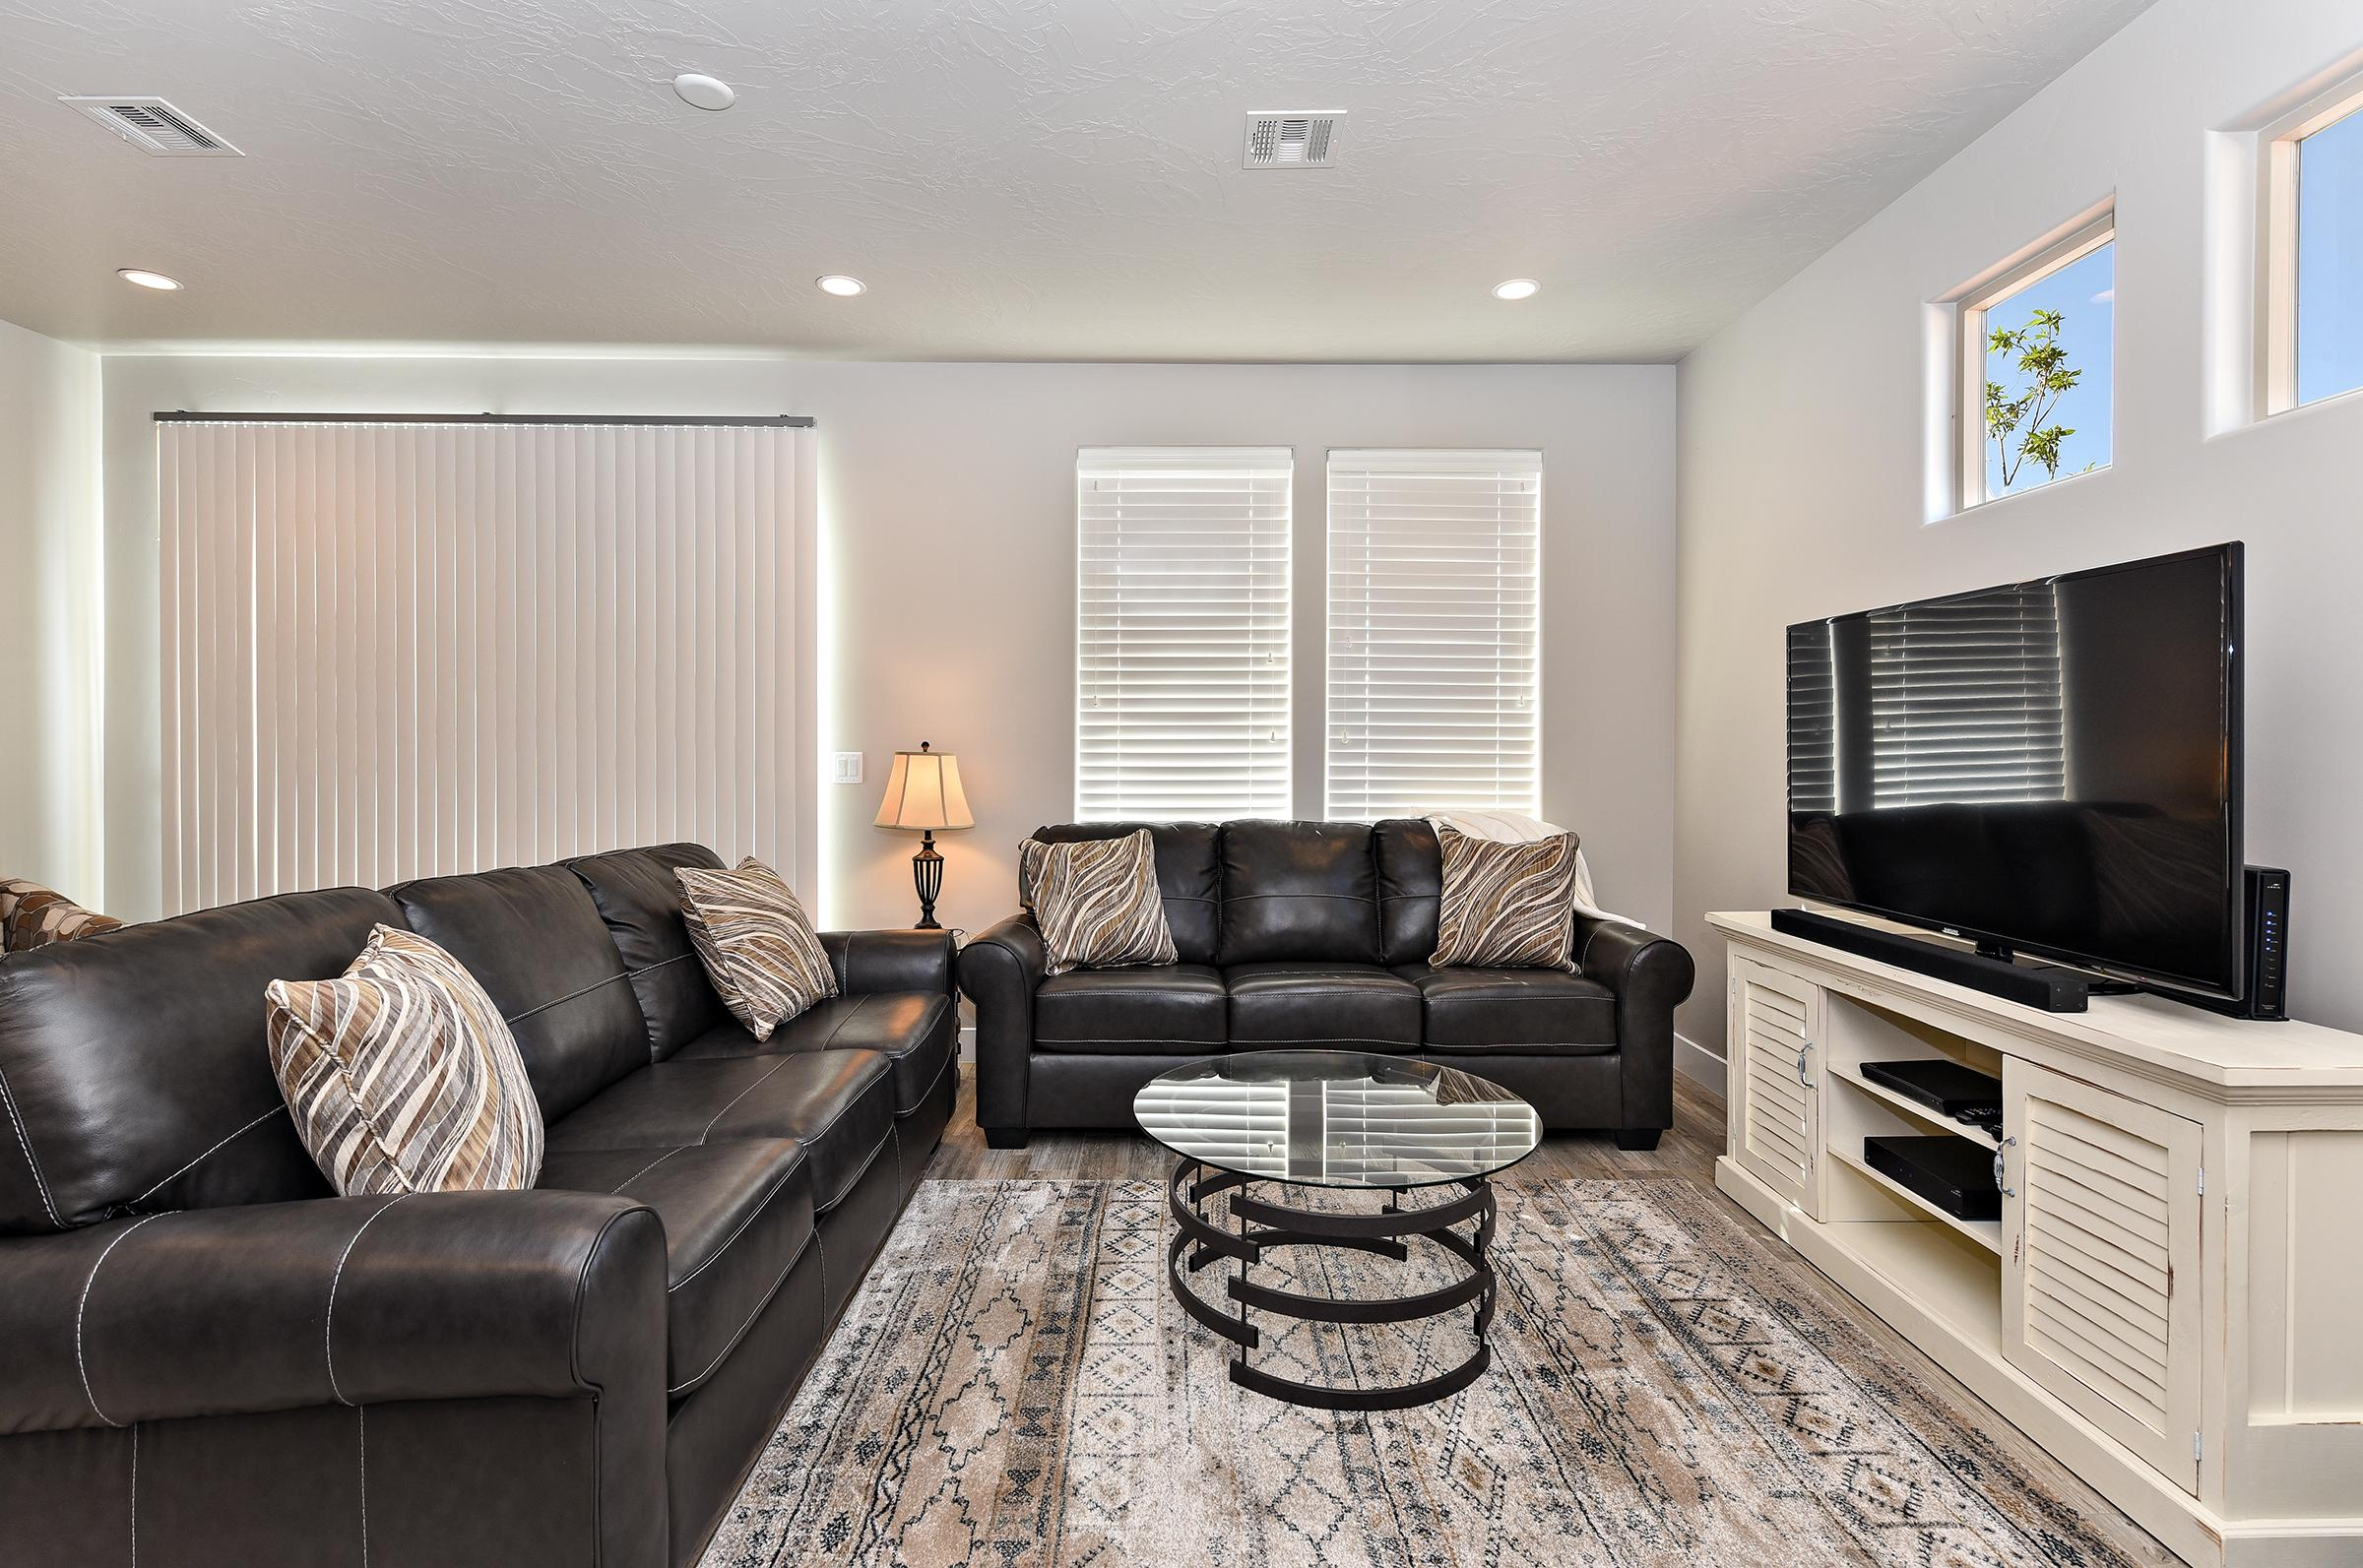 The Living Room is the perfect location to comfortably relax during your vacation with friends or family.